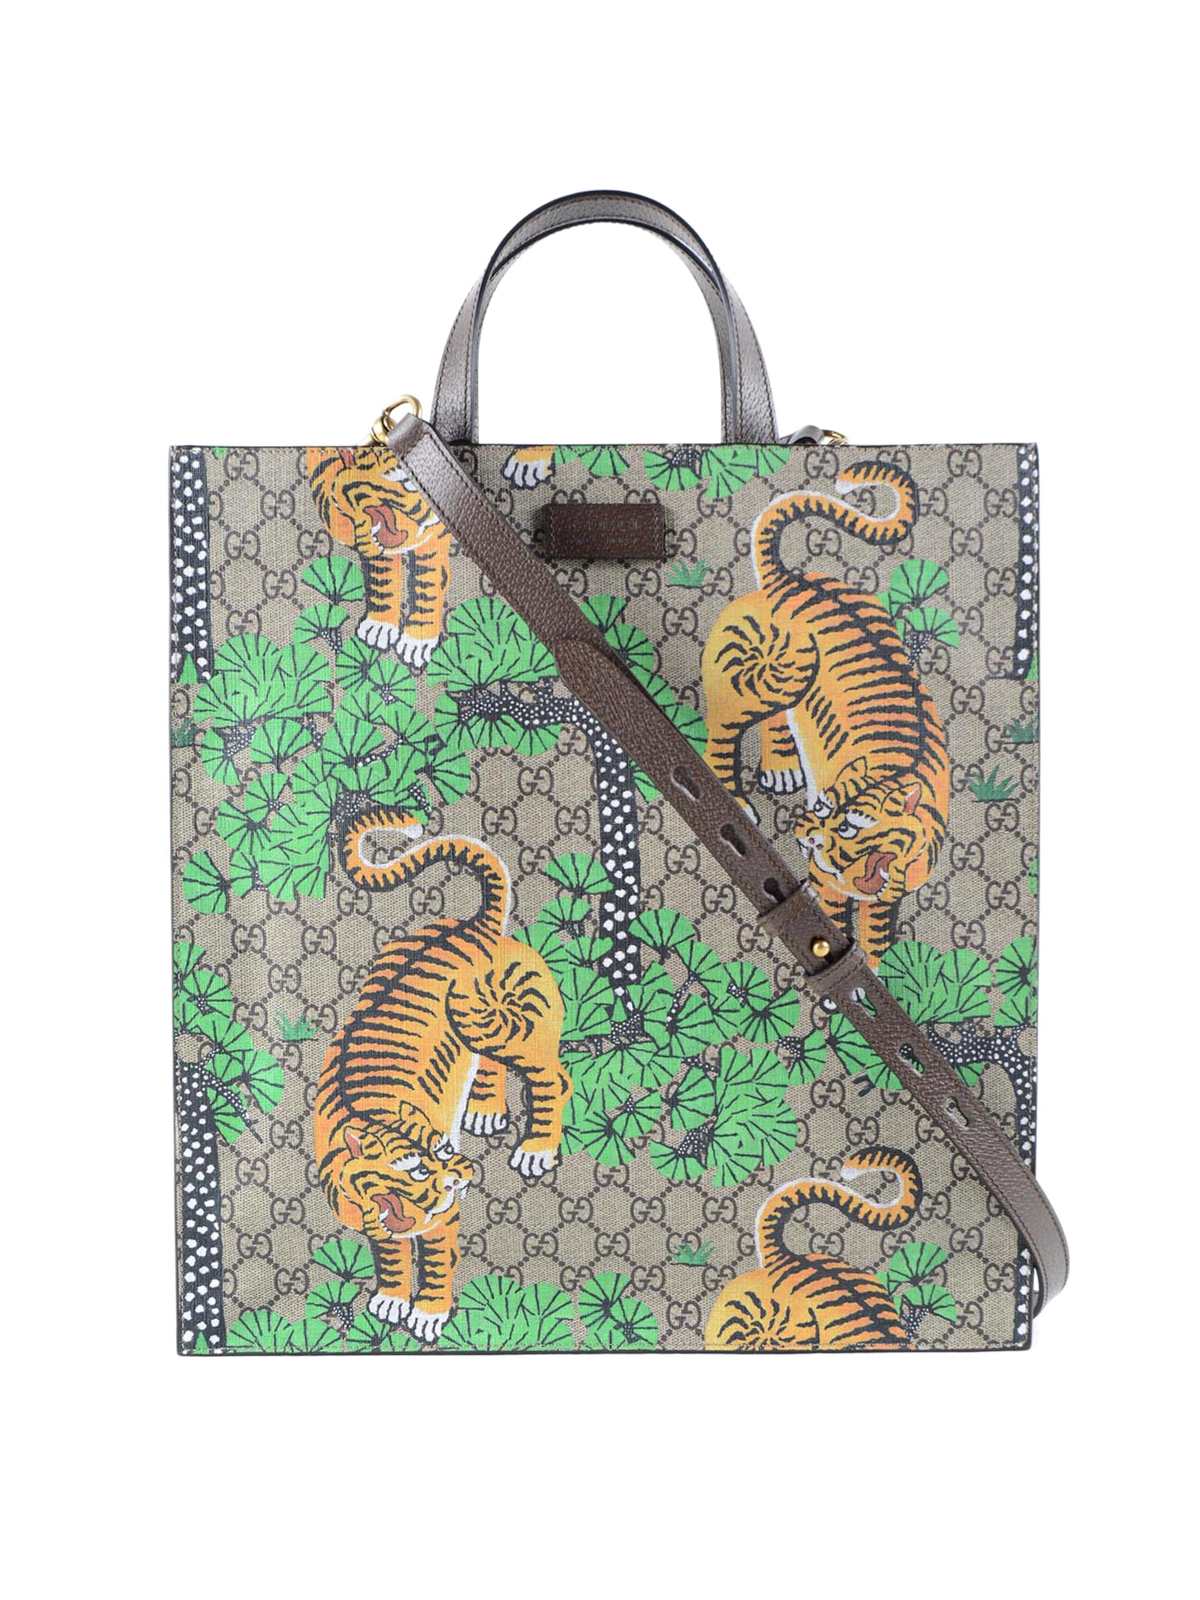 1adebee096b1dd Gucci Tote Bag Bengal Print | Stanford Center for Opportunity Policy ...